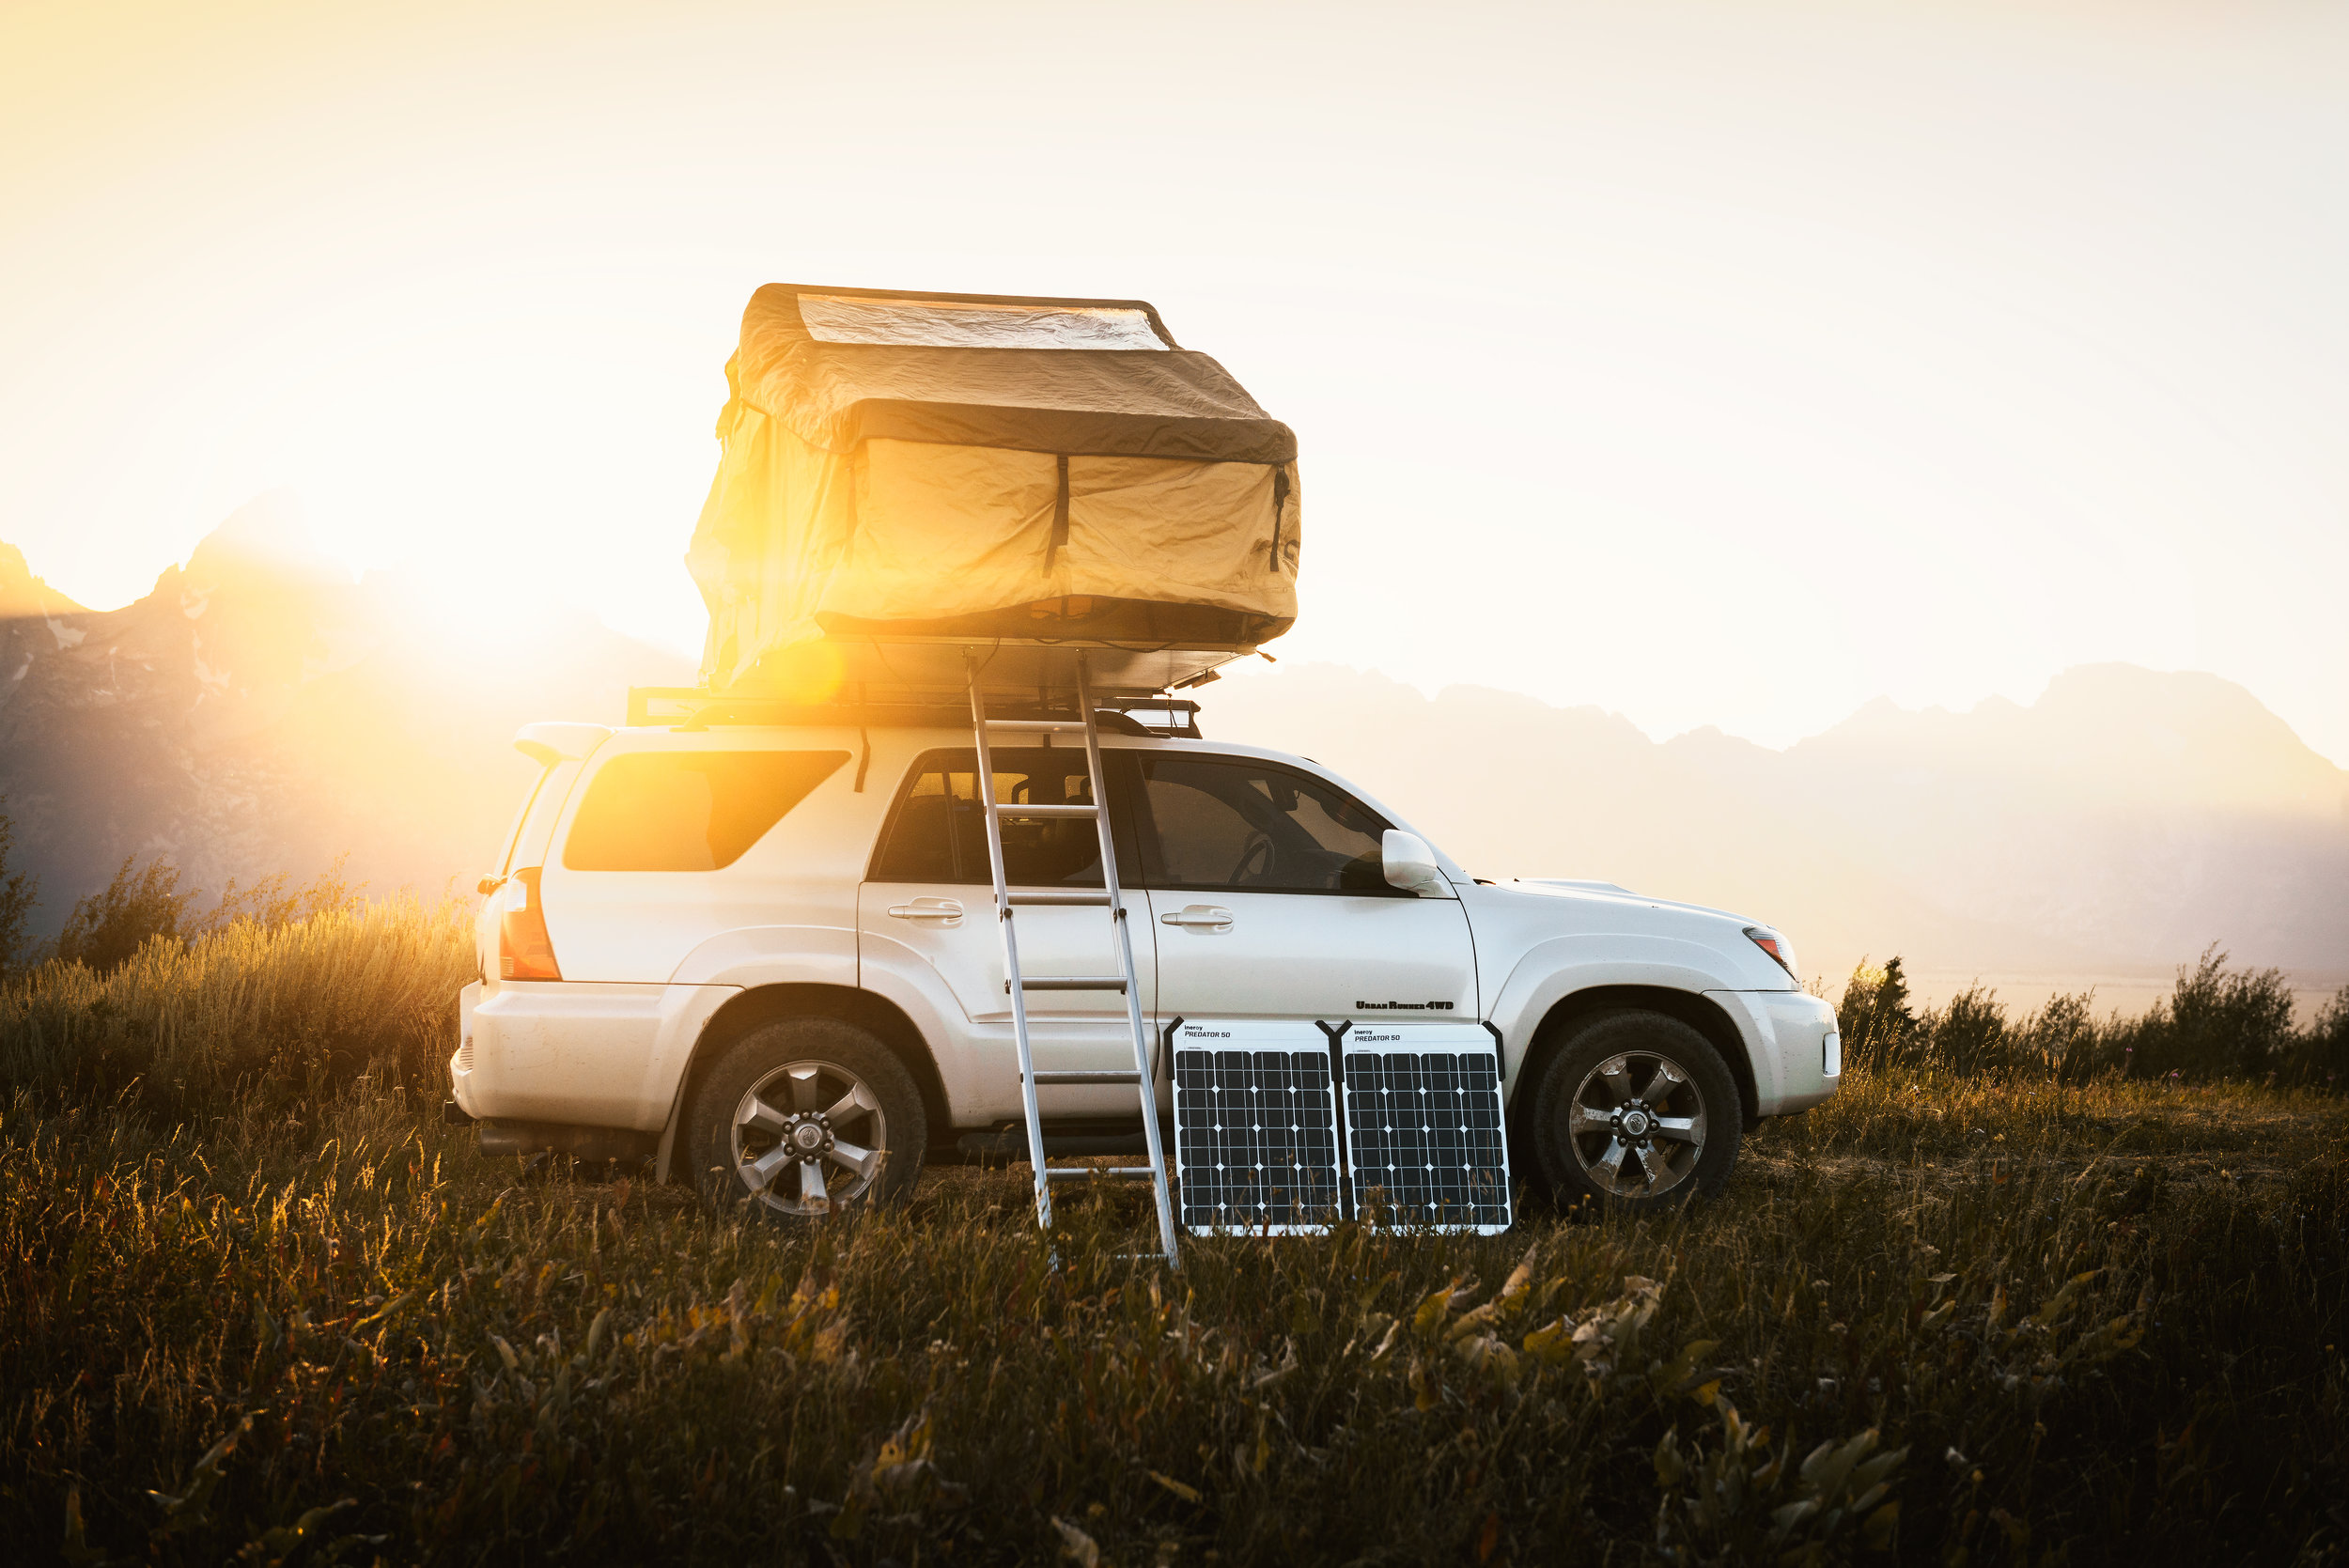 Camping with the Kodiak Solar Powered Compact Generator makes traveling a breeze